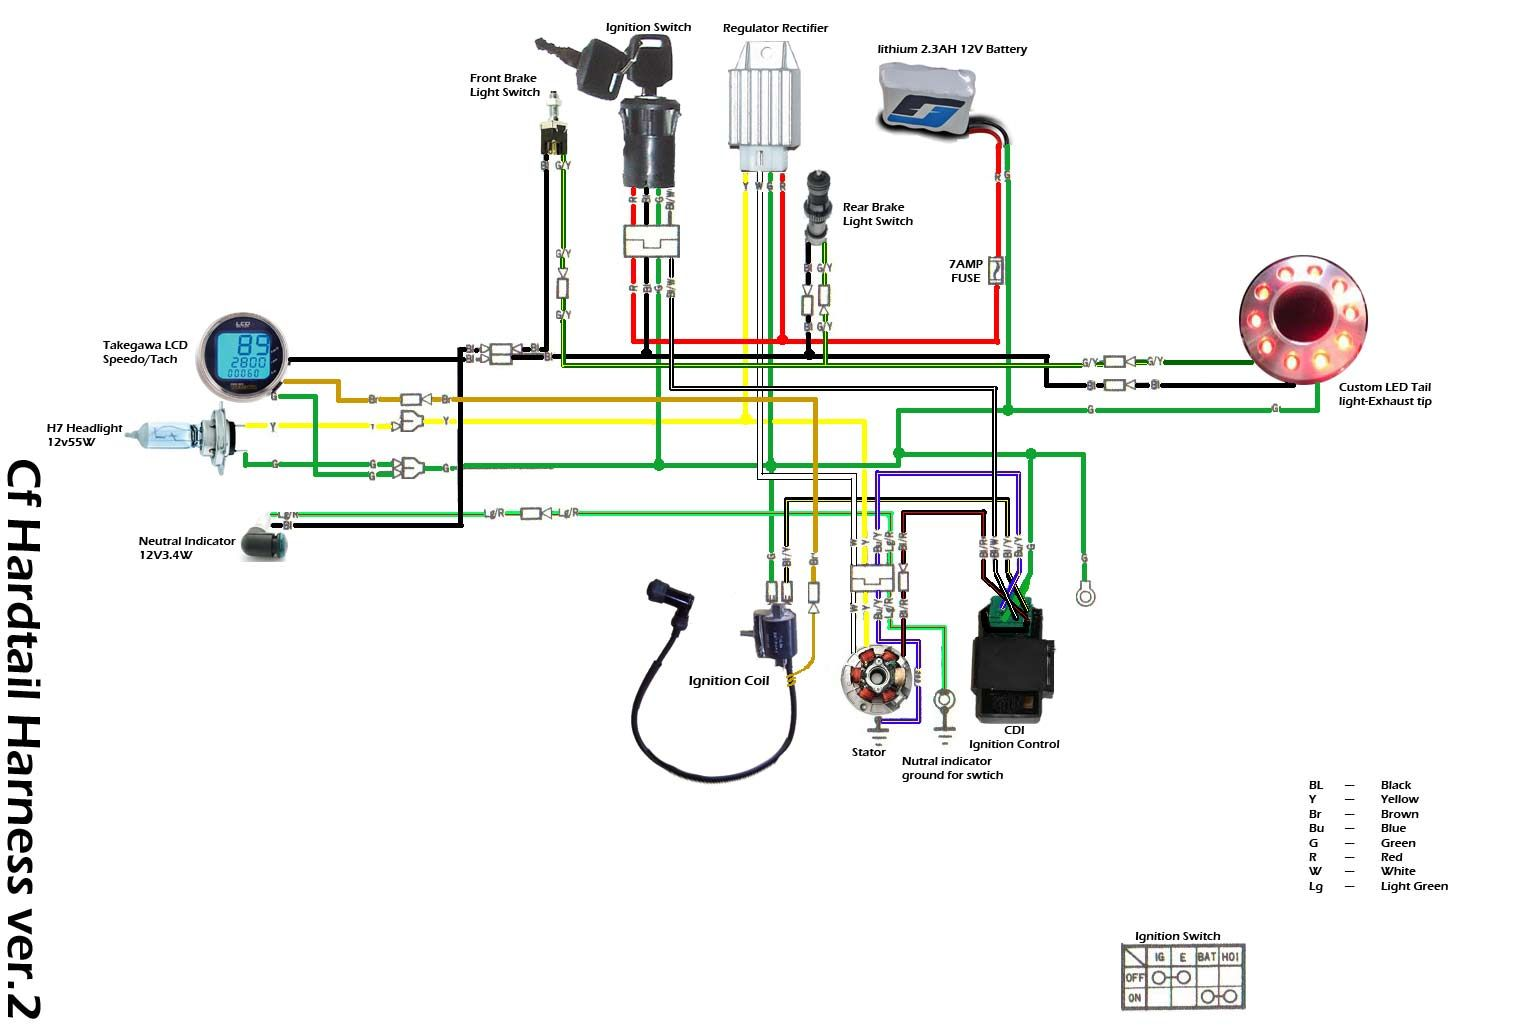 lifan 110 atv wiring diagram wiring diagram detailed outdoor lighting wiring diagram lifan 110 wiring diagram [ 1516 x 1025 Pixel ]